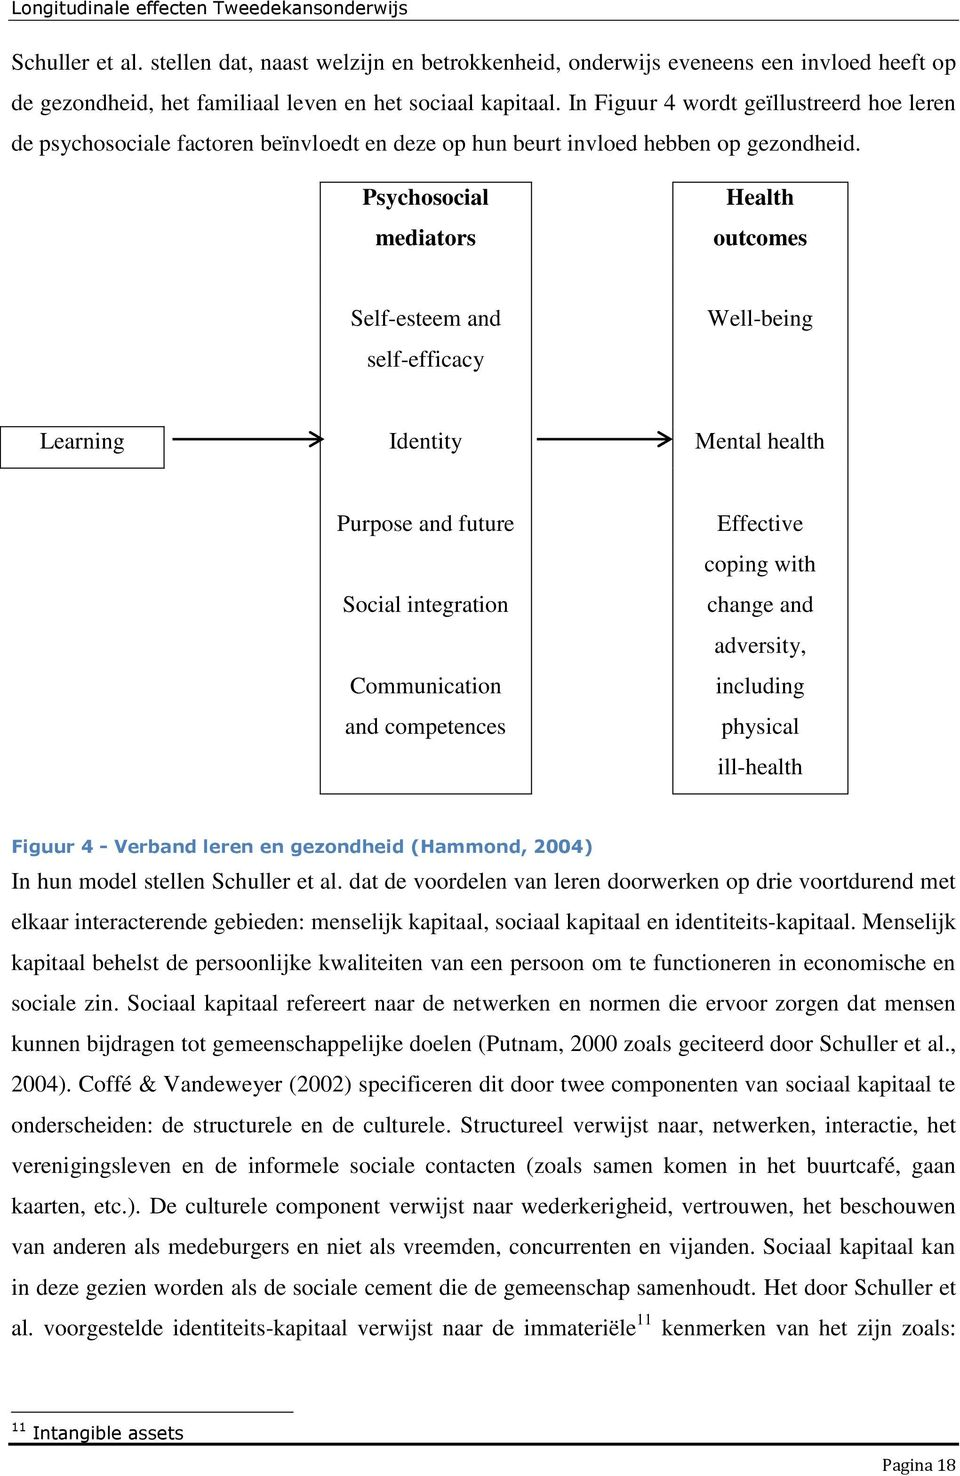 Psychosocial mediators Health outcomes Self-esteem and self-efficacy Well-being Learning Identity Mental health Purpose and future Social integration Communication and competences Effective coping